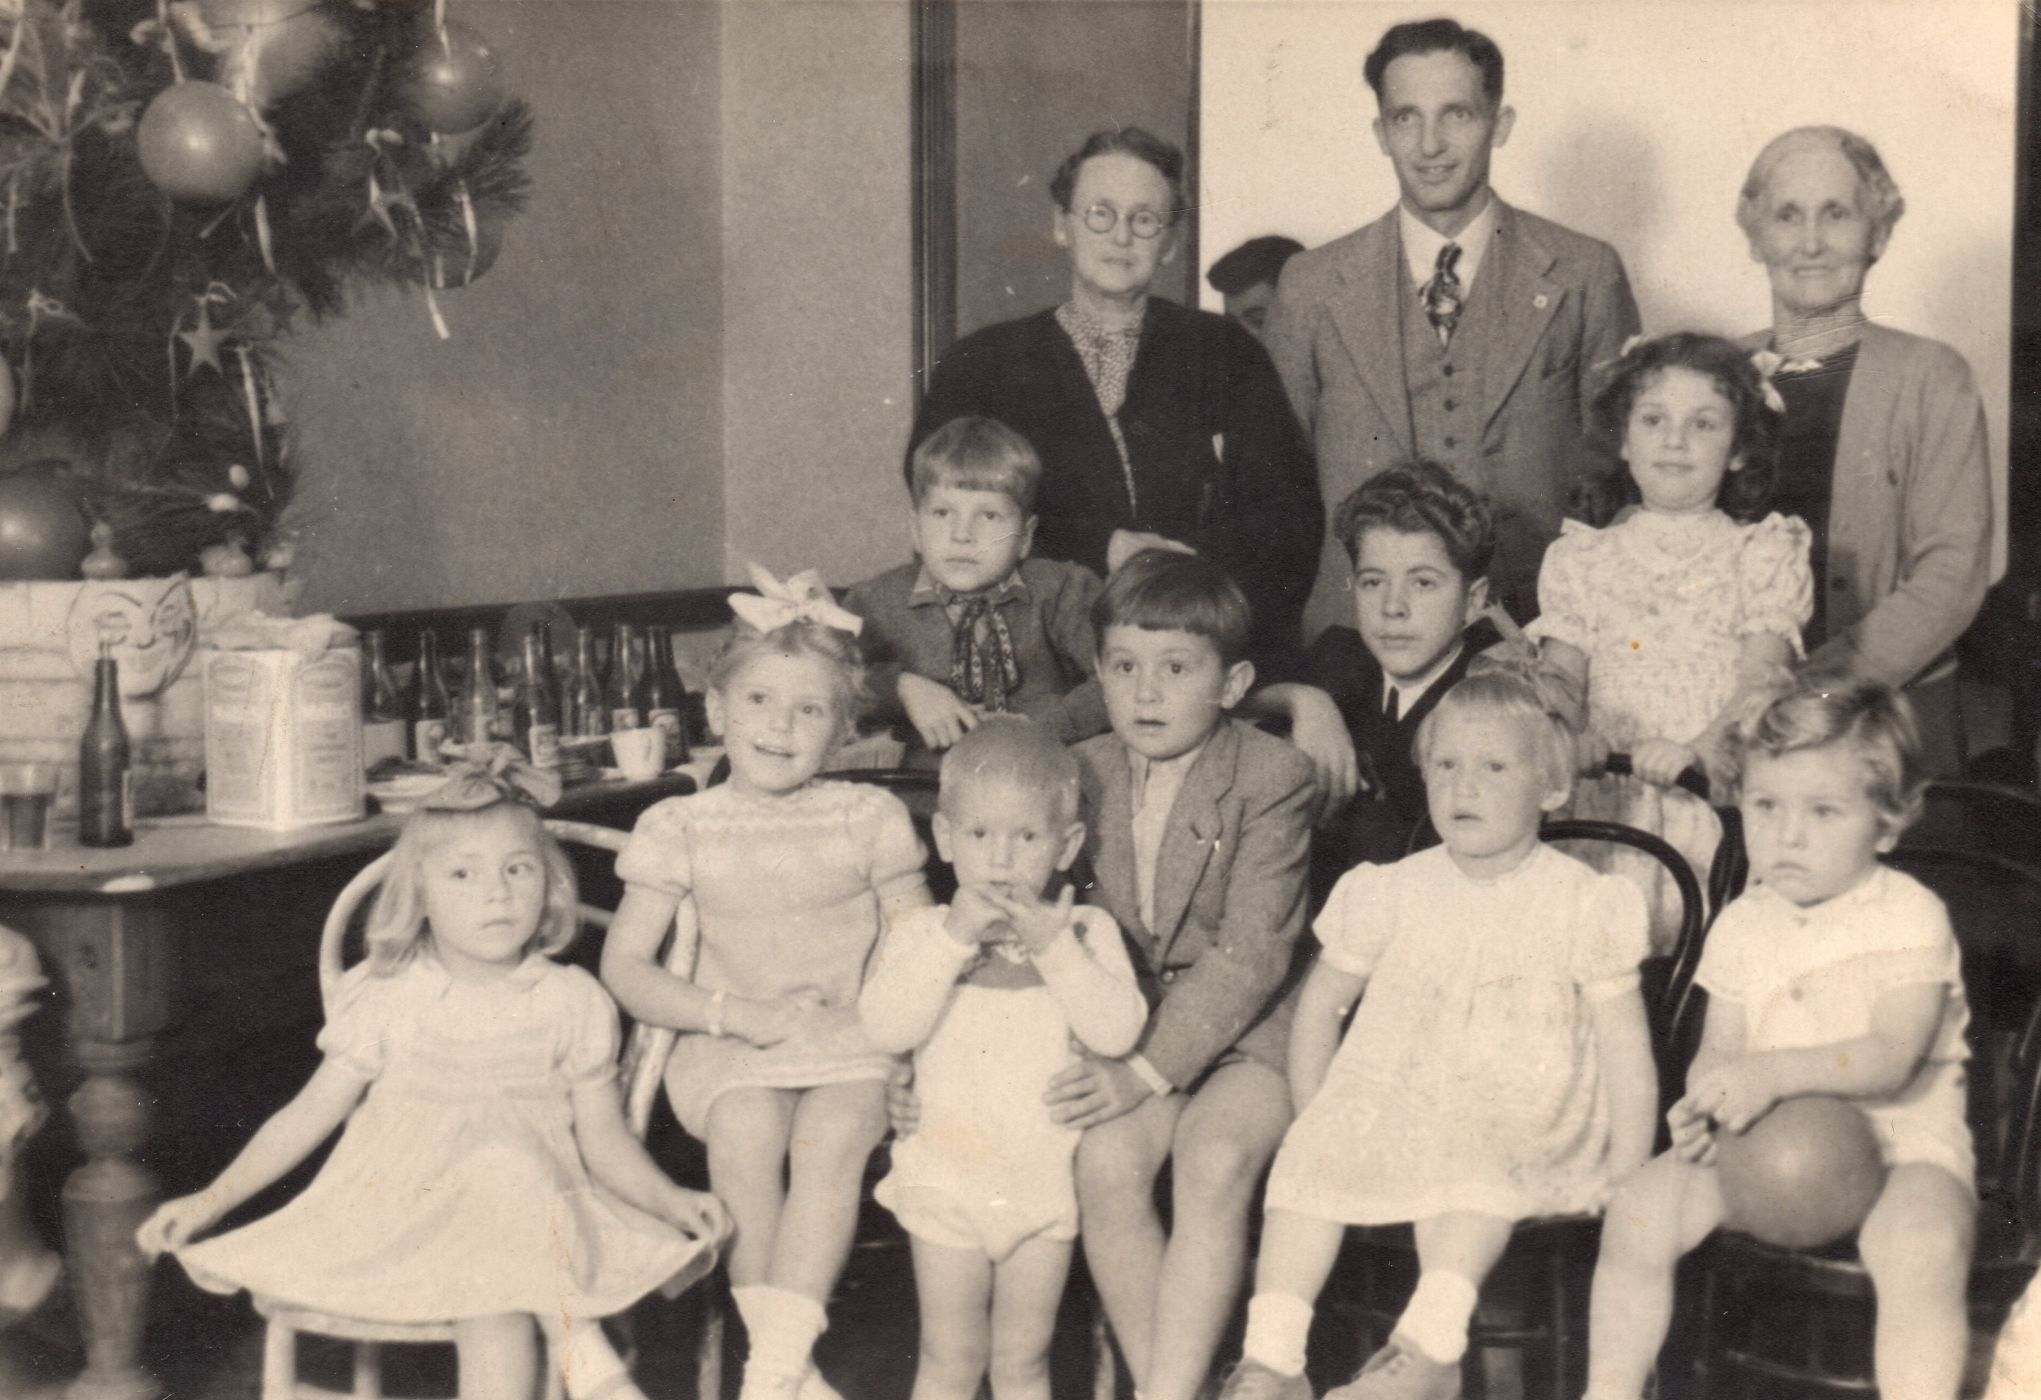 A group of  refugees at a Christmas function, nine childen, five sitting in the front on chairs, and three adults standing behind them.  Part of a Christmas tree is on a table to the left.